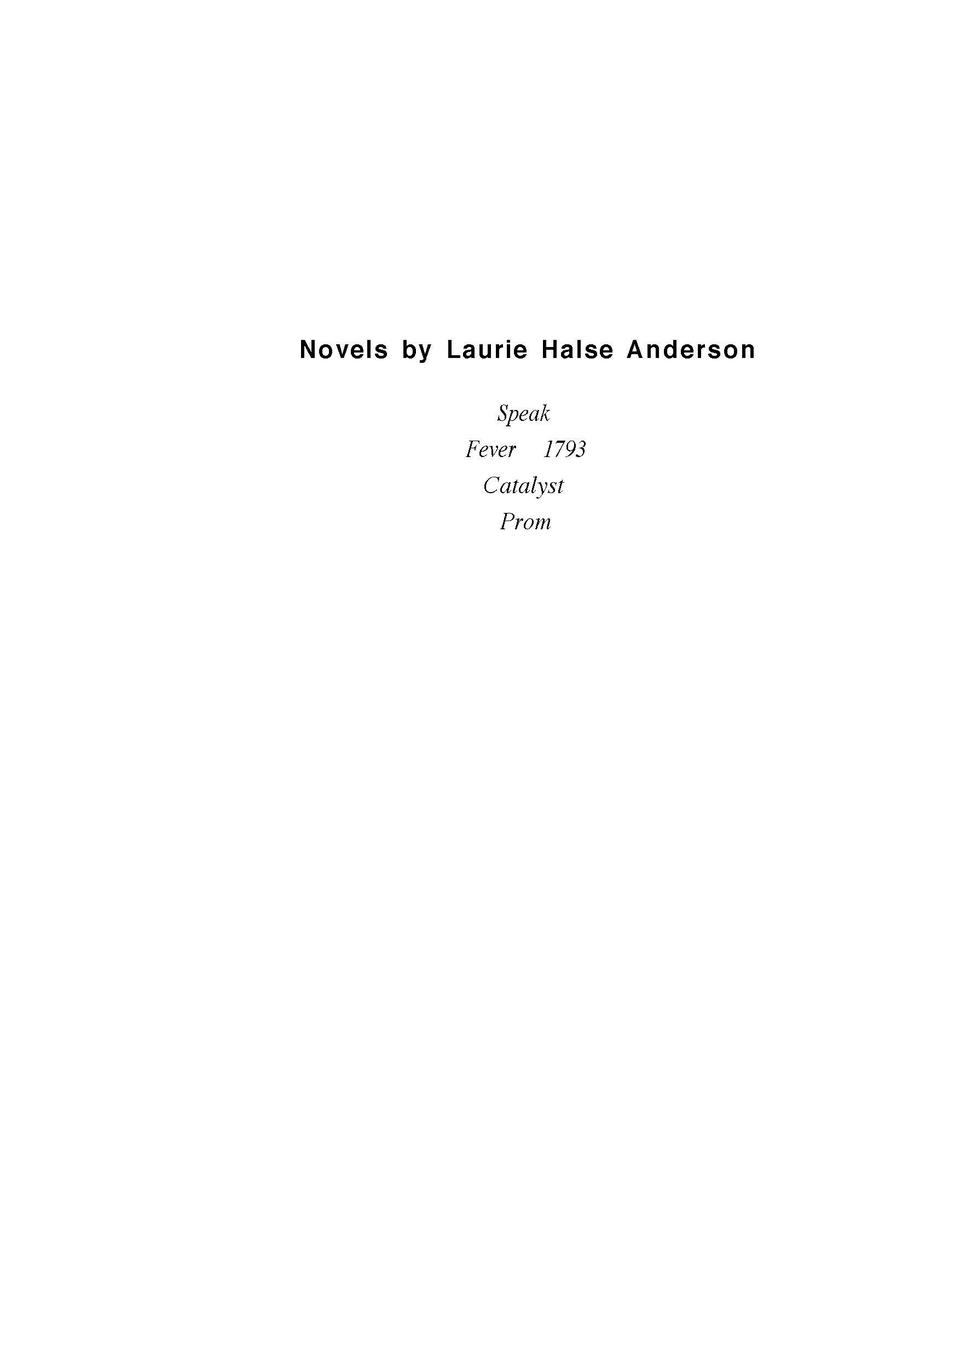 speak com novels by laurie halse anderson speak fever 1793 catalyst prom speak laurie halse a n d e r s o n